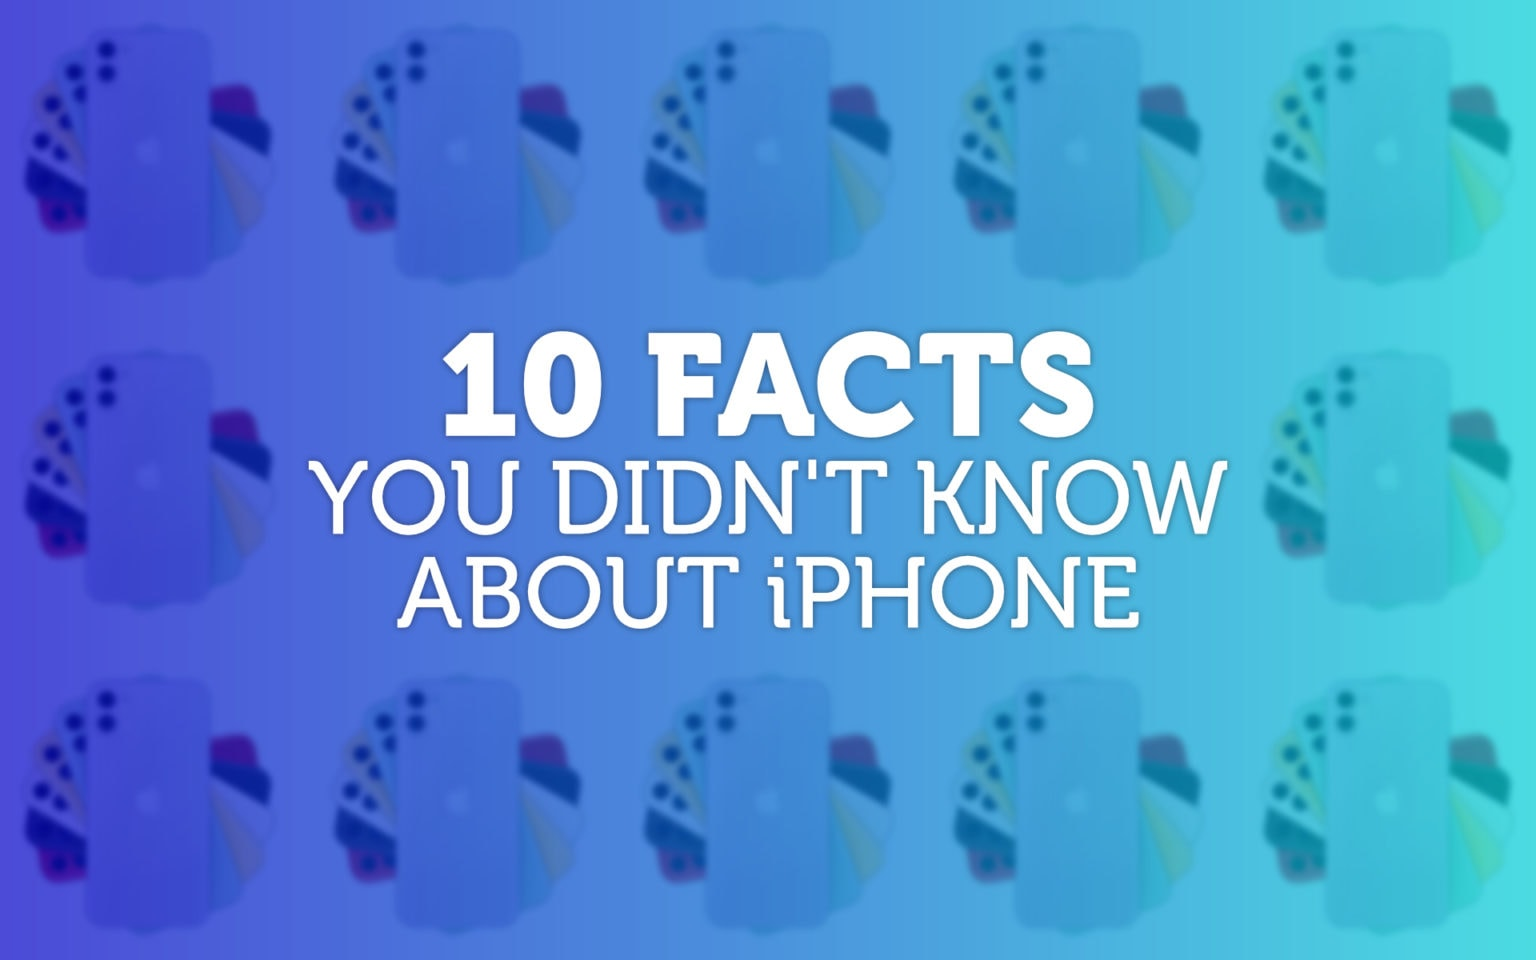 10-facts-iPhone